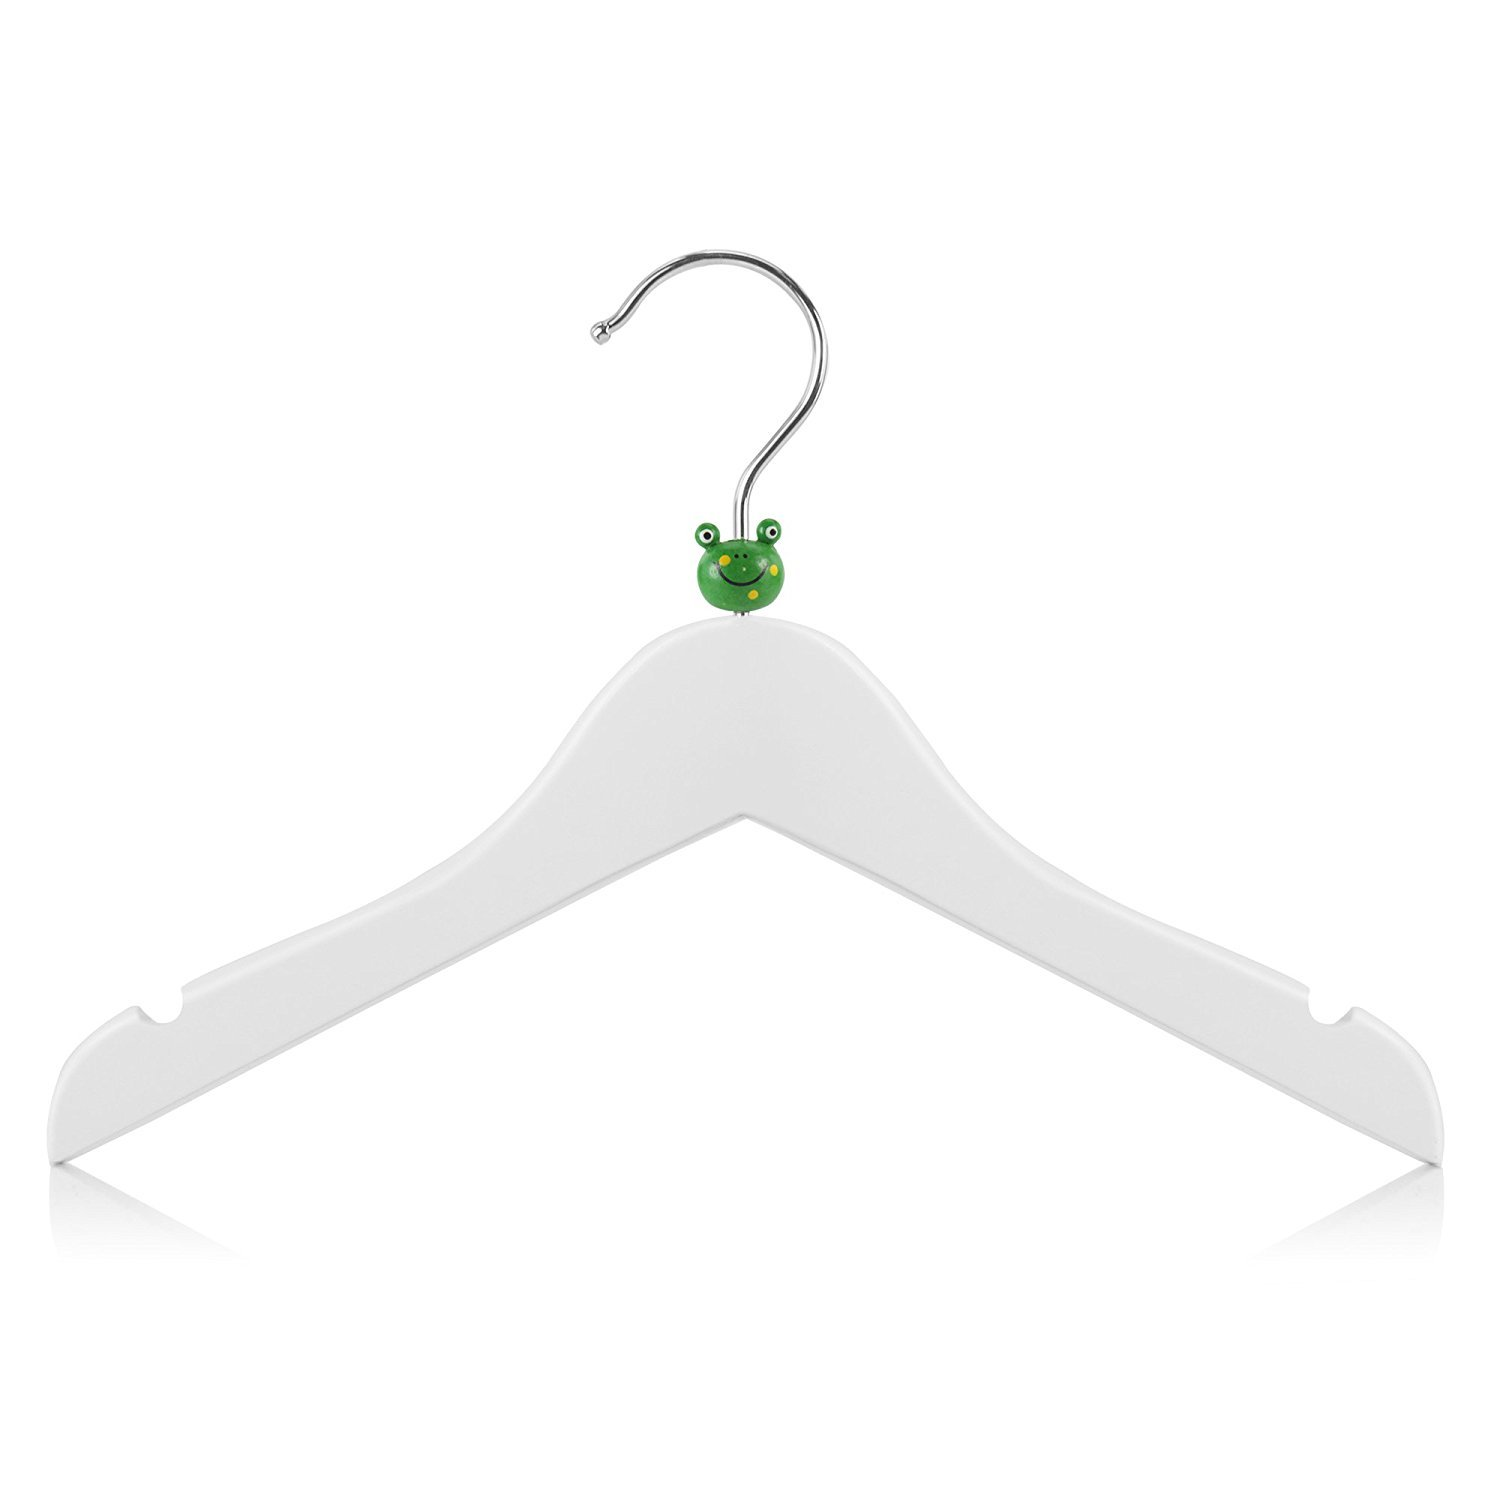 Hangerworld Baby & Toddler 11.8'' Wooden Coat Hangers with Fun Mixed Animal Head Design, Pack of 18, White by HANGERWORLD (Image #4)